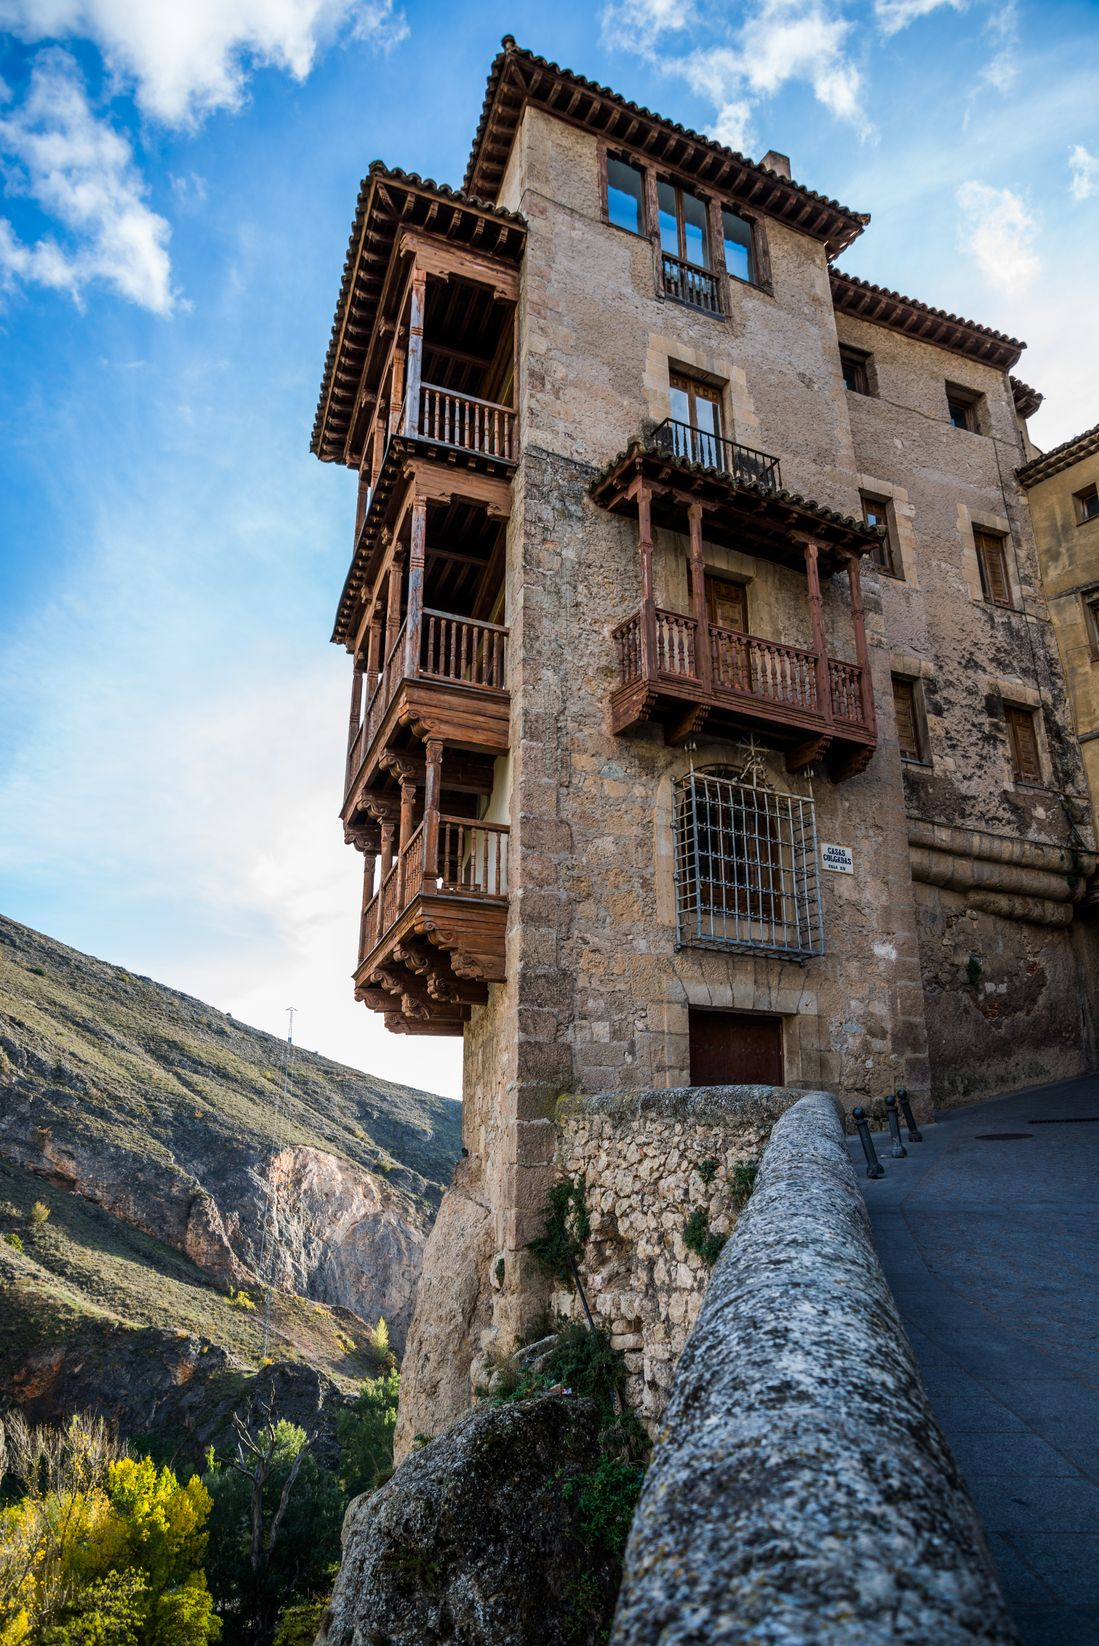 Hanged houses in Cuenca, Spain - one of the most magical places on the planet